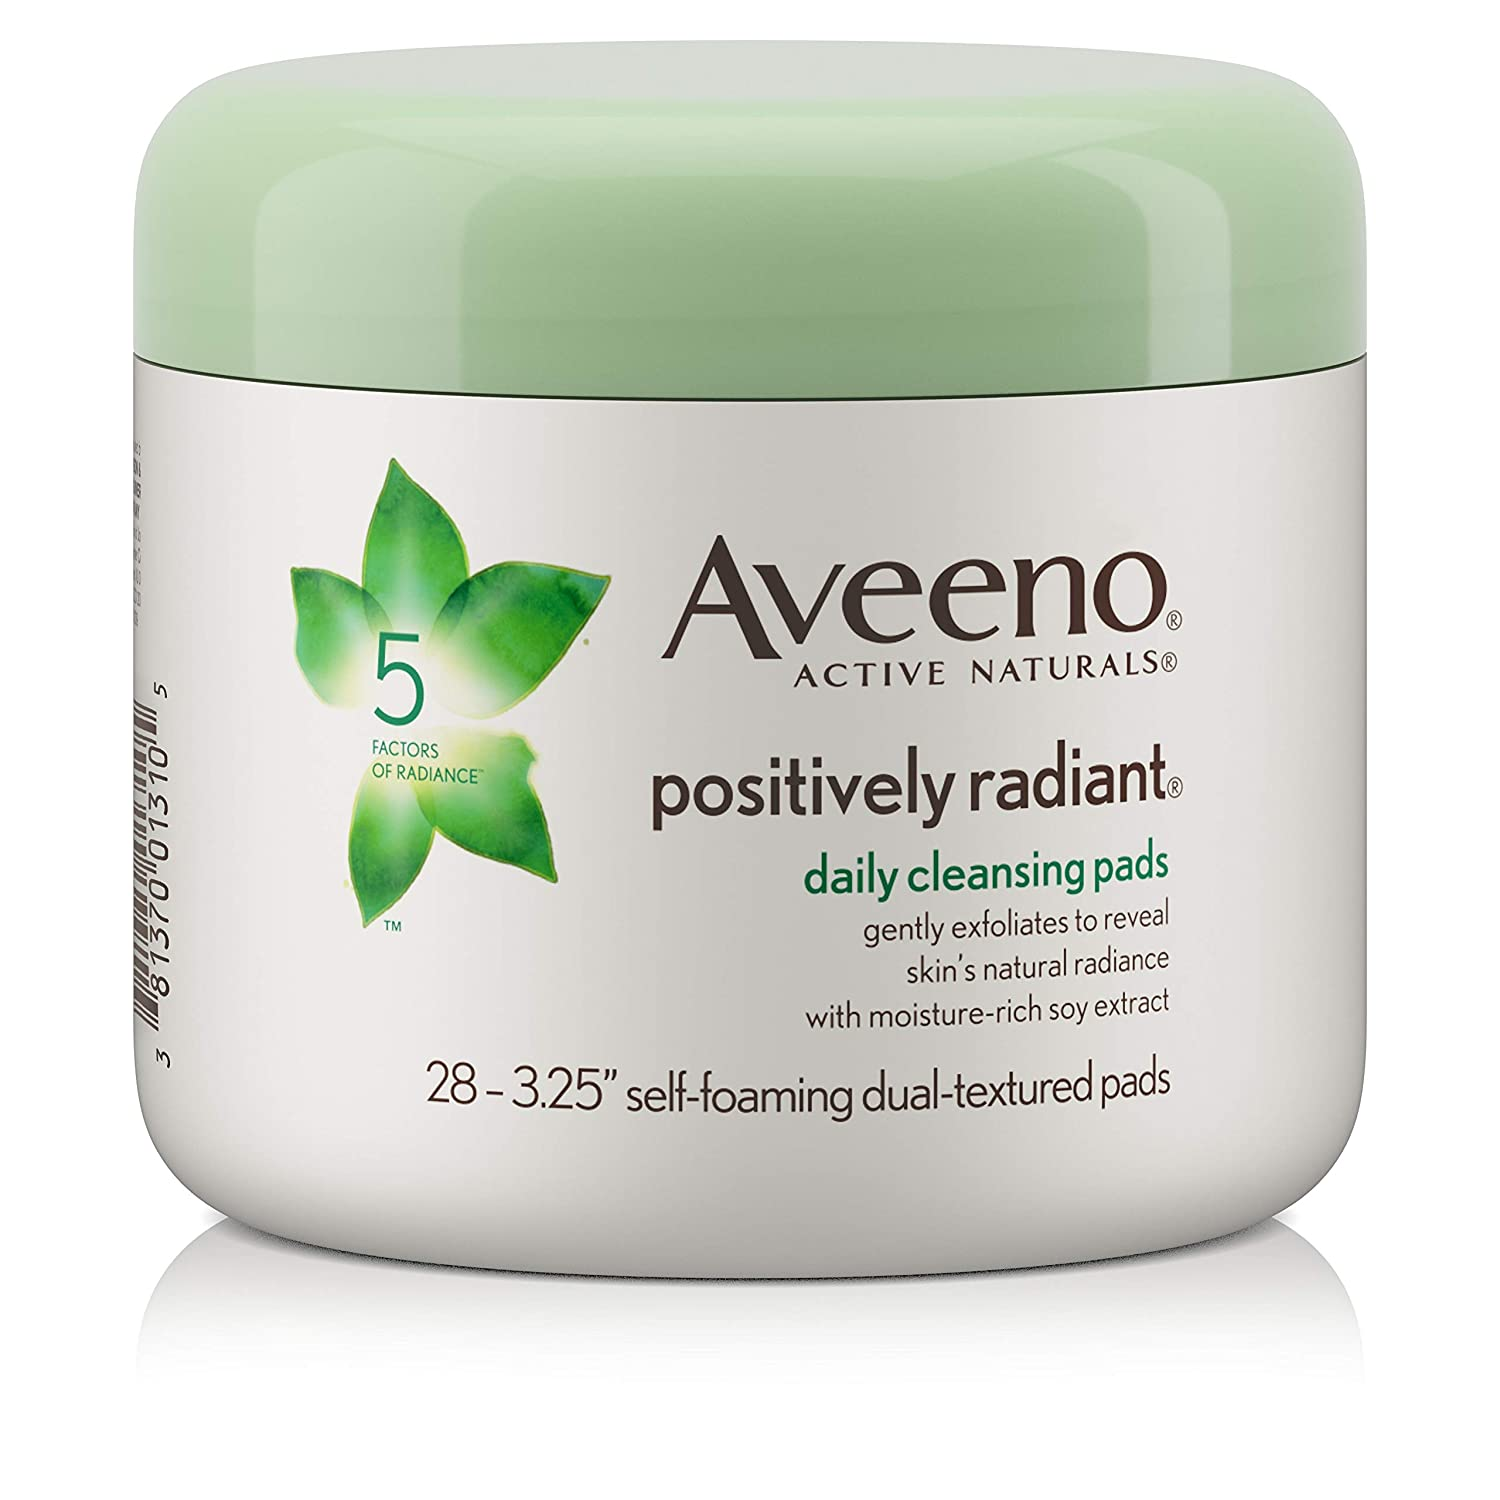 B00027DD2I Aveeno Active Naturals Positively Radiant Cleansing Pads, 28 Count 71KbxjhPeeL._SL1500_